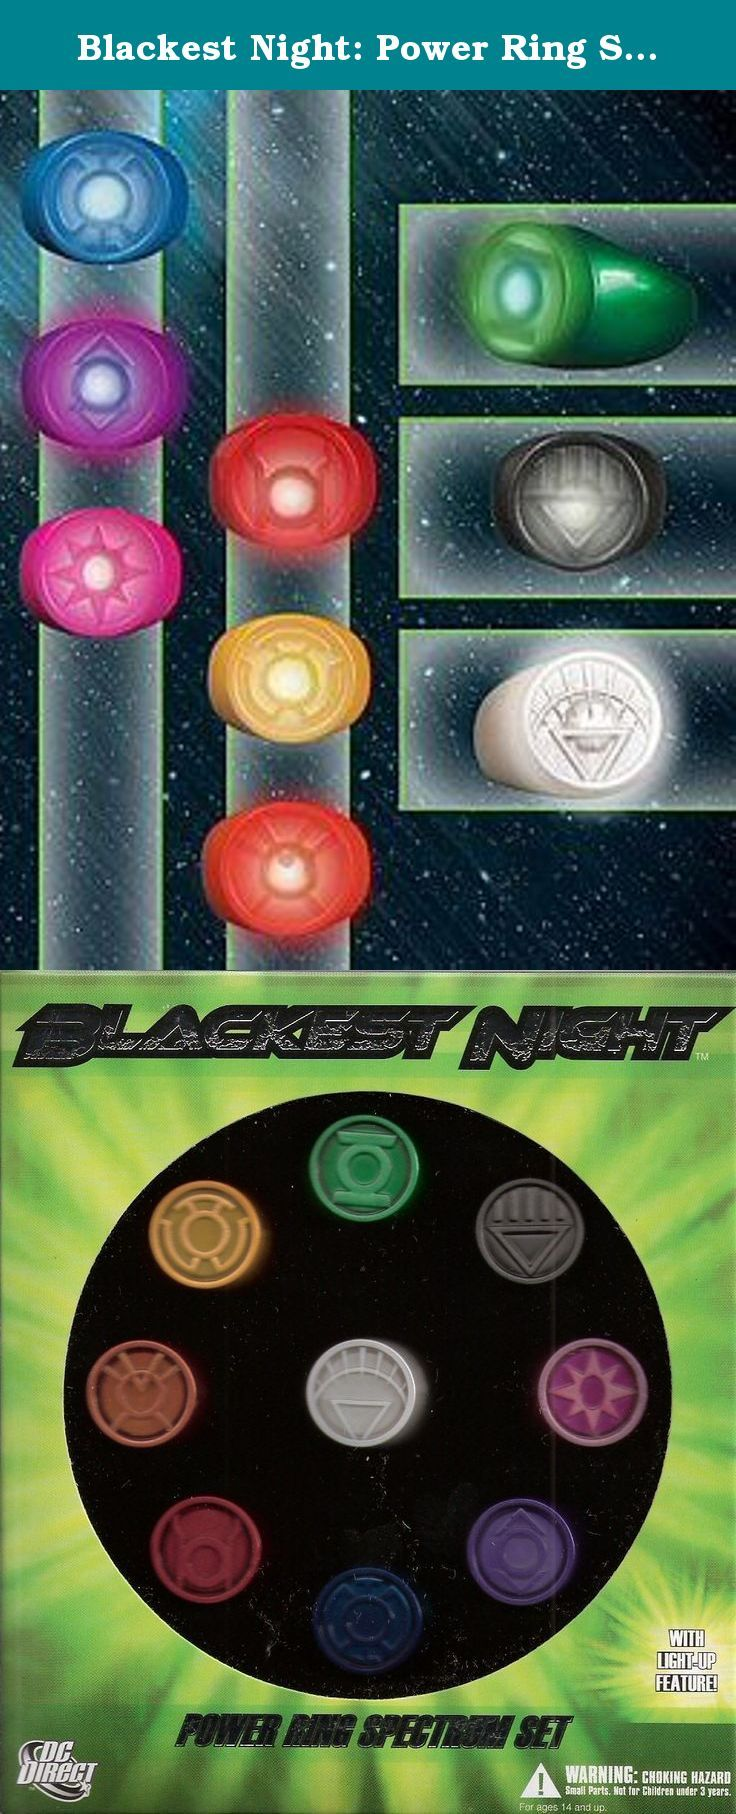 Blackest Night: Power Ring Spectrum Set. From the pages of Blackest Night! Embody the entire emotional spectrum of the Blackest Night storyline with this special light-up ring set from DC Direct! Featuring designs that are authentic to the comic, each of these nine wearable, adjustable plastic rings (one each in red, orange, yellow, green, blue, indigo and violet, plus black and white) lights up using the special key included with the set. (The batteries can also be changed). Packaged in…